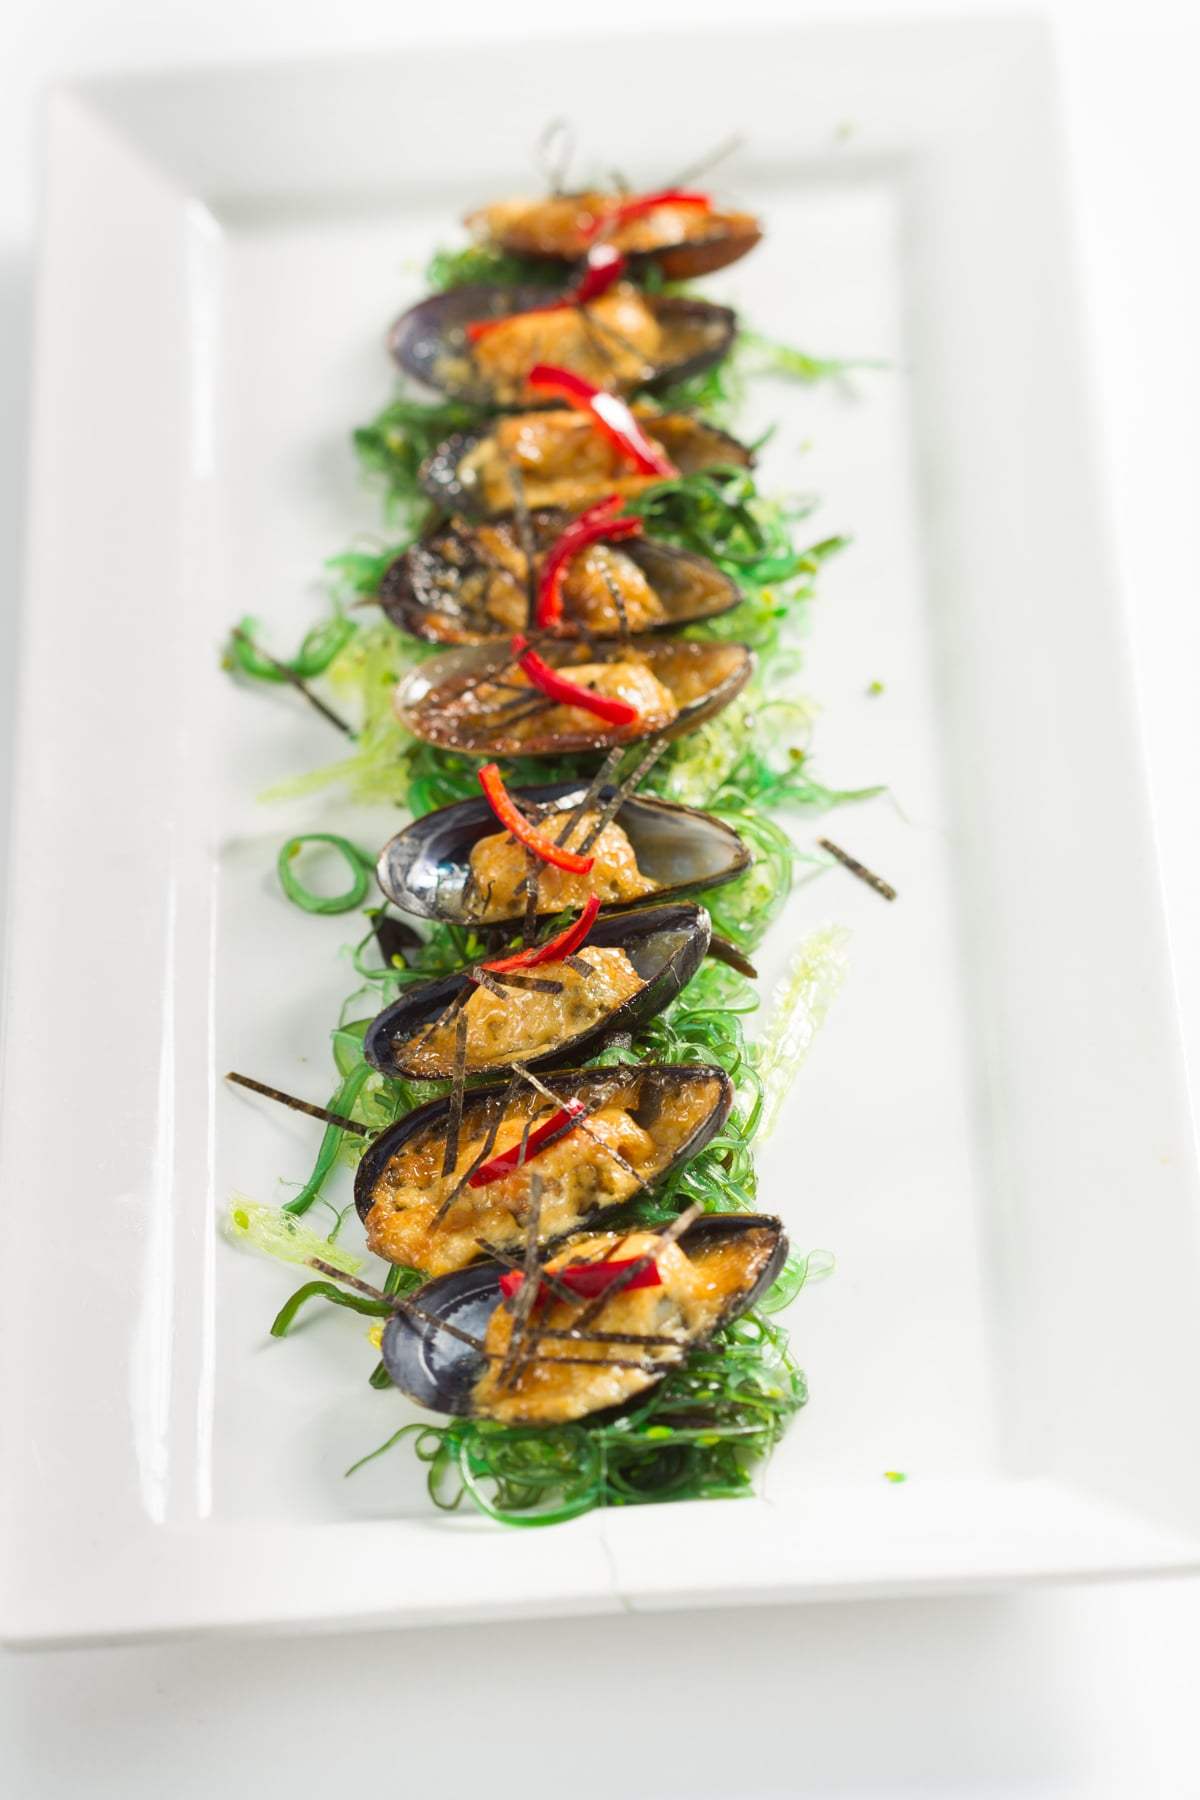 mussel-smoked-mayonaisse-nori-pickled-fresno-pepper_8577321799_o.jpg